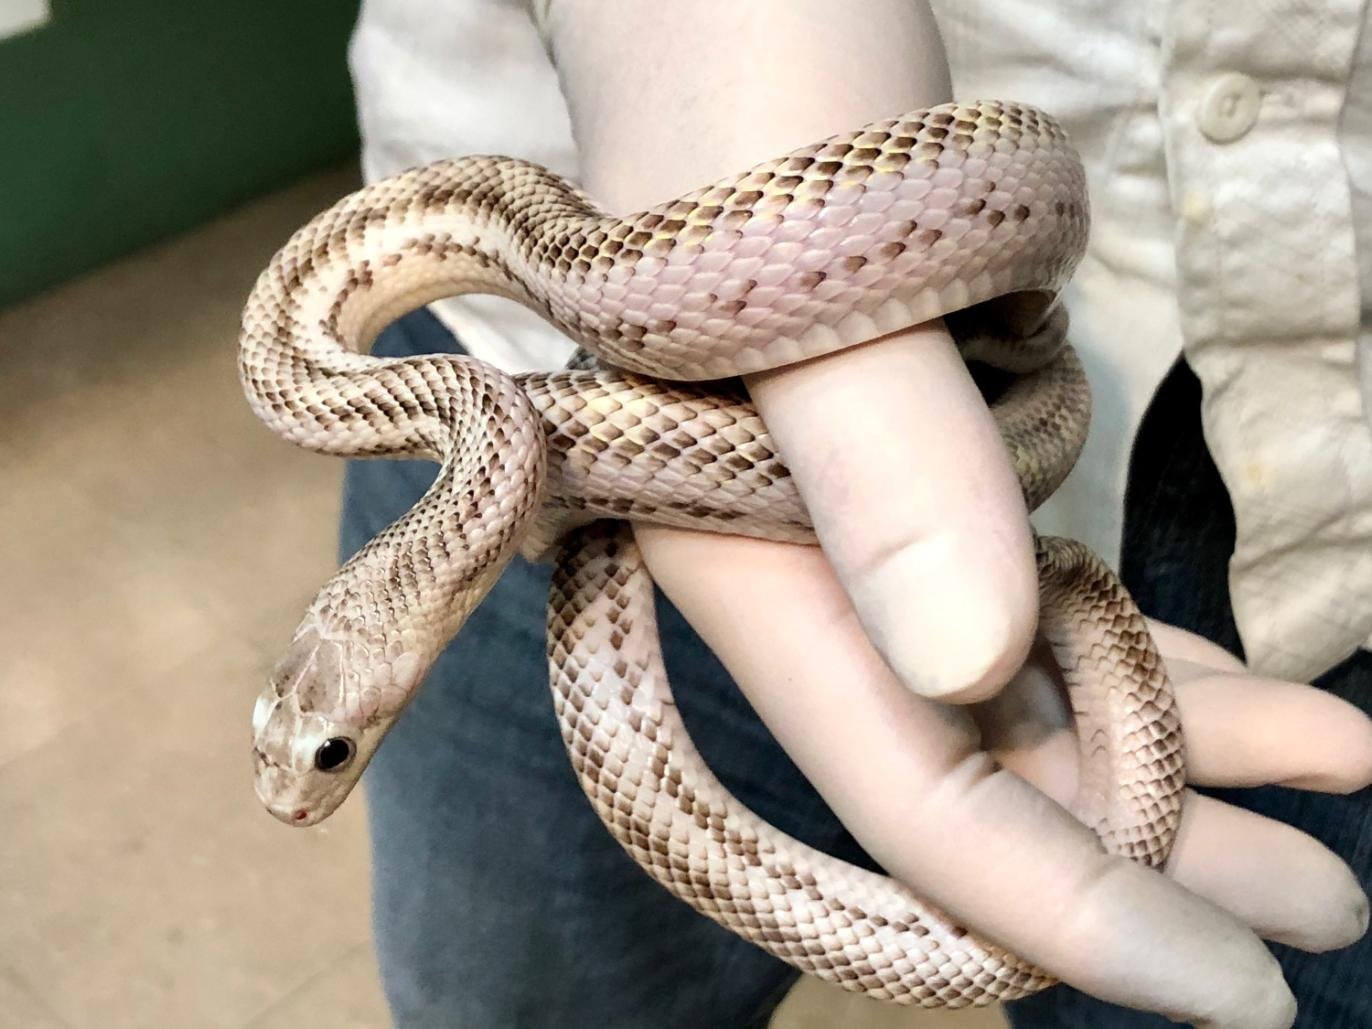 z OUT OF STOCK - TEXAS RAT SNAKE - WHITESIDED, CB MALE, Elaphe obsoleta lindheimeri